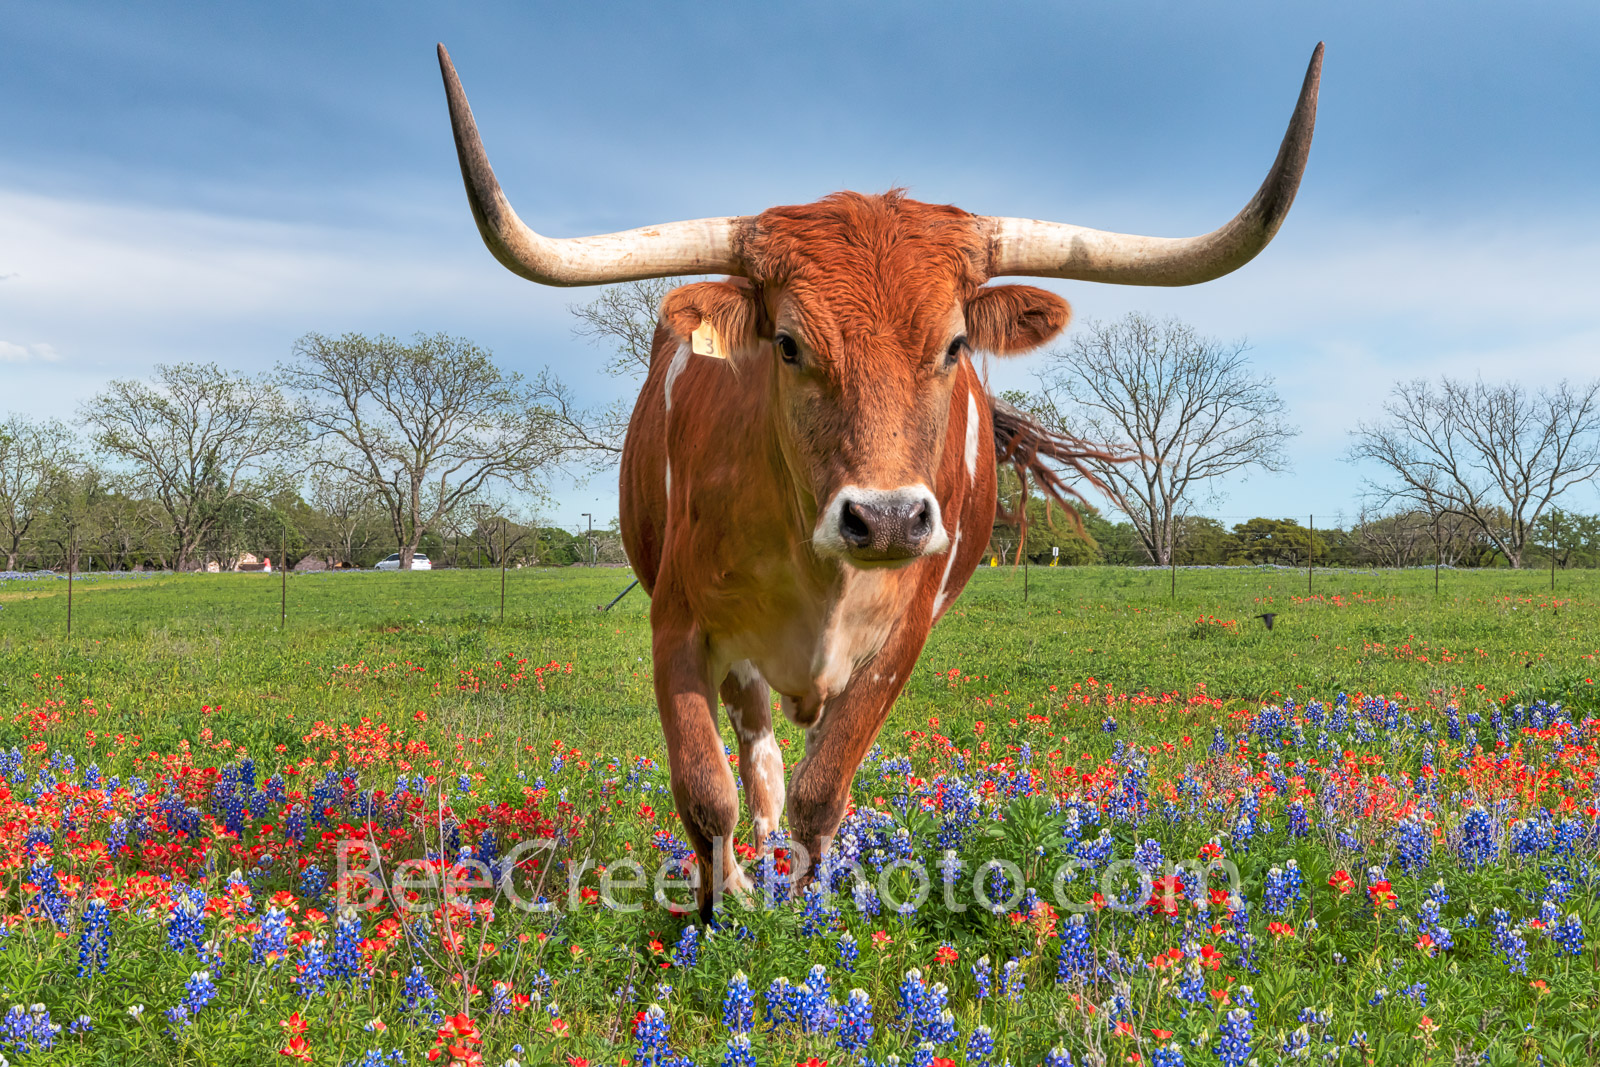 bluebonnets, indian paintbrush, wildflowers, texas wildflowers, longhorns,  texas hill country, cattle, herd, steers, horns, hill country, bluebonnets in the texas hill country, wildflower,, photo